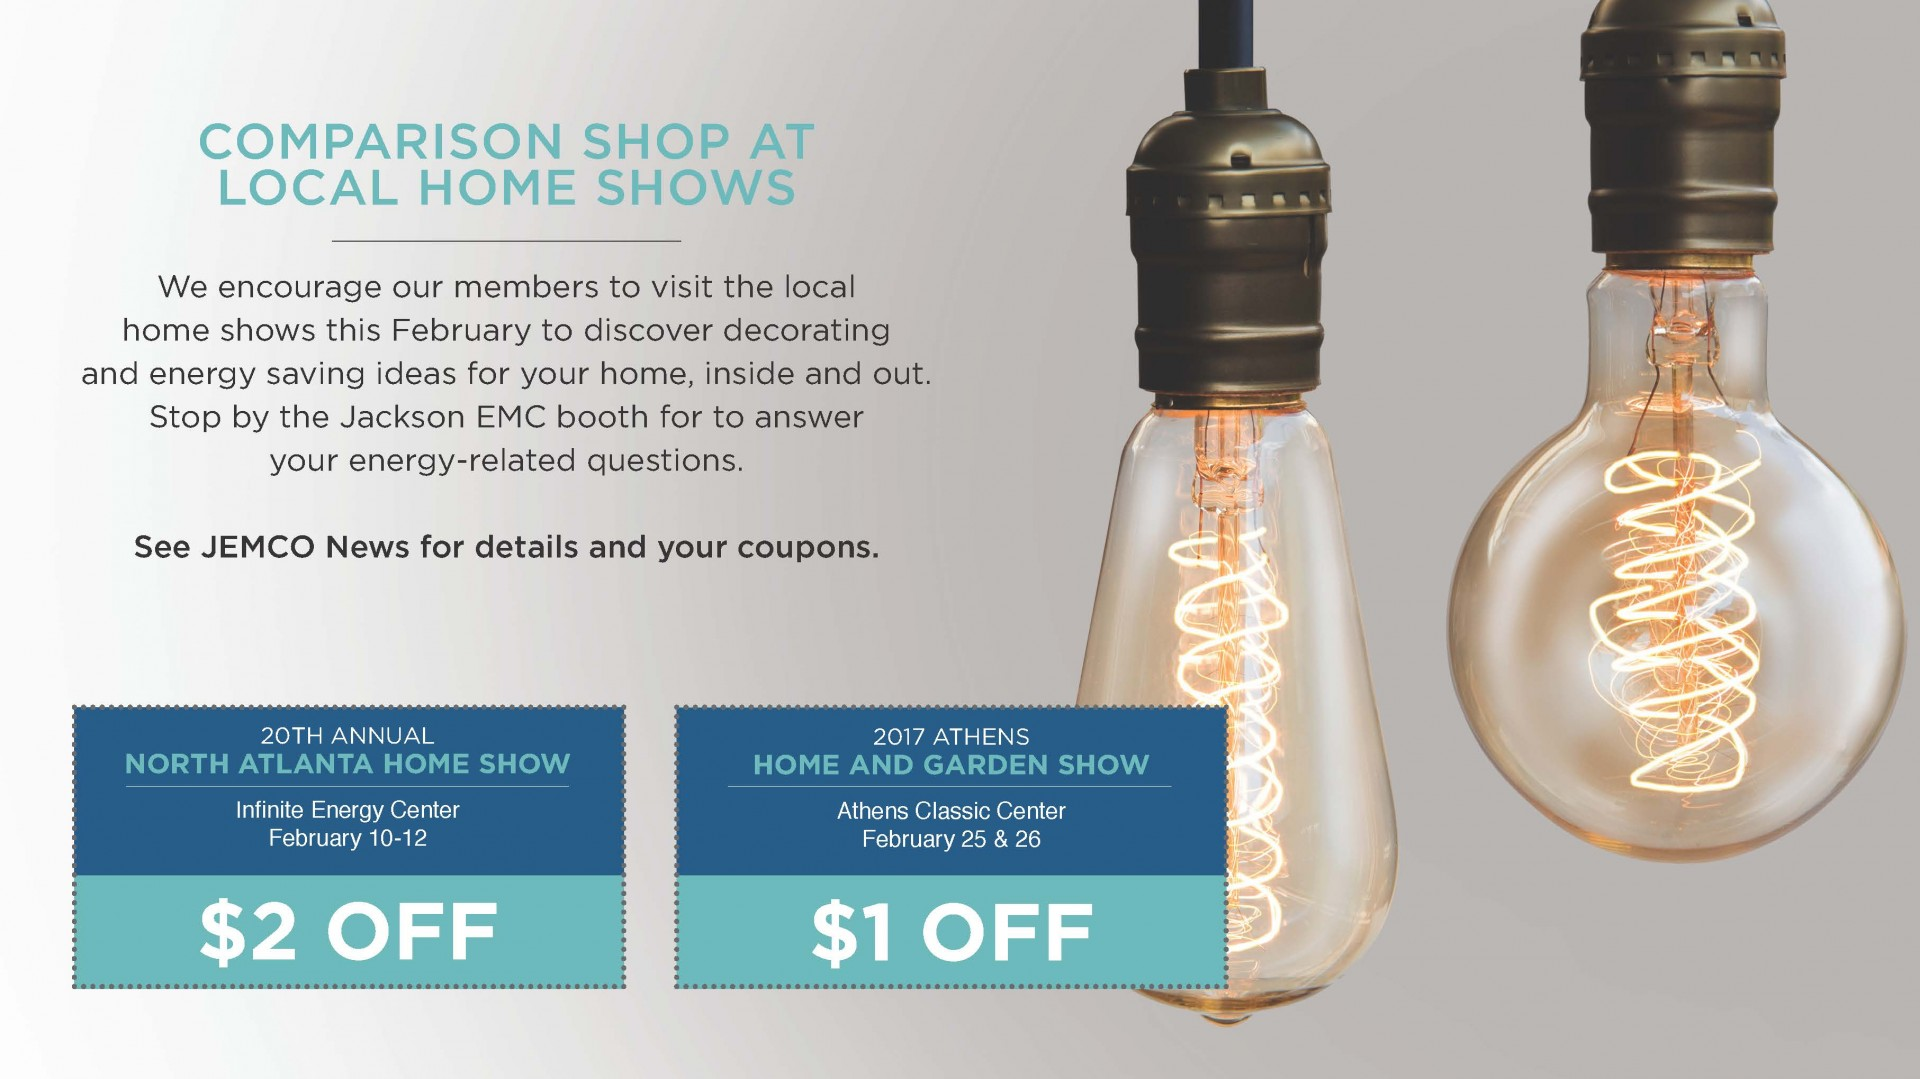 Need to Know: Comparison Shop at Local Home Shows